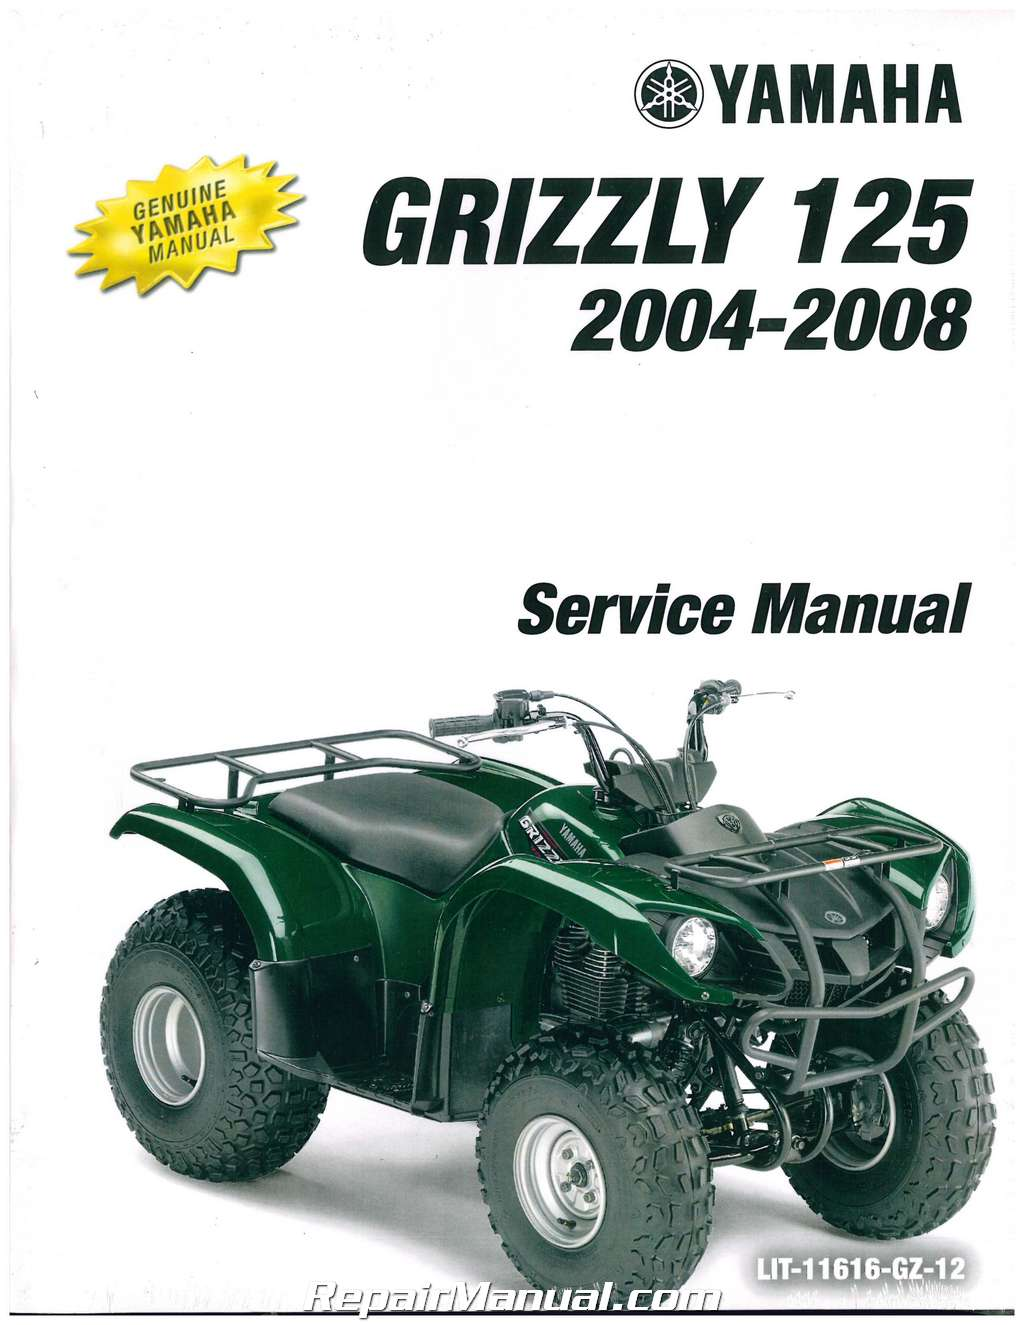 2004 2013 yamaha yfm125g grizzly 125 automatic service manual lit rh ebay com Yamaha Grizzly 125 Automatic Yamaha Grizzly 125 Automatic